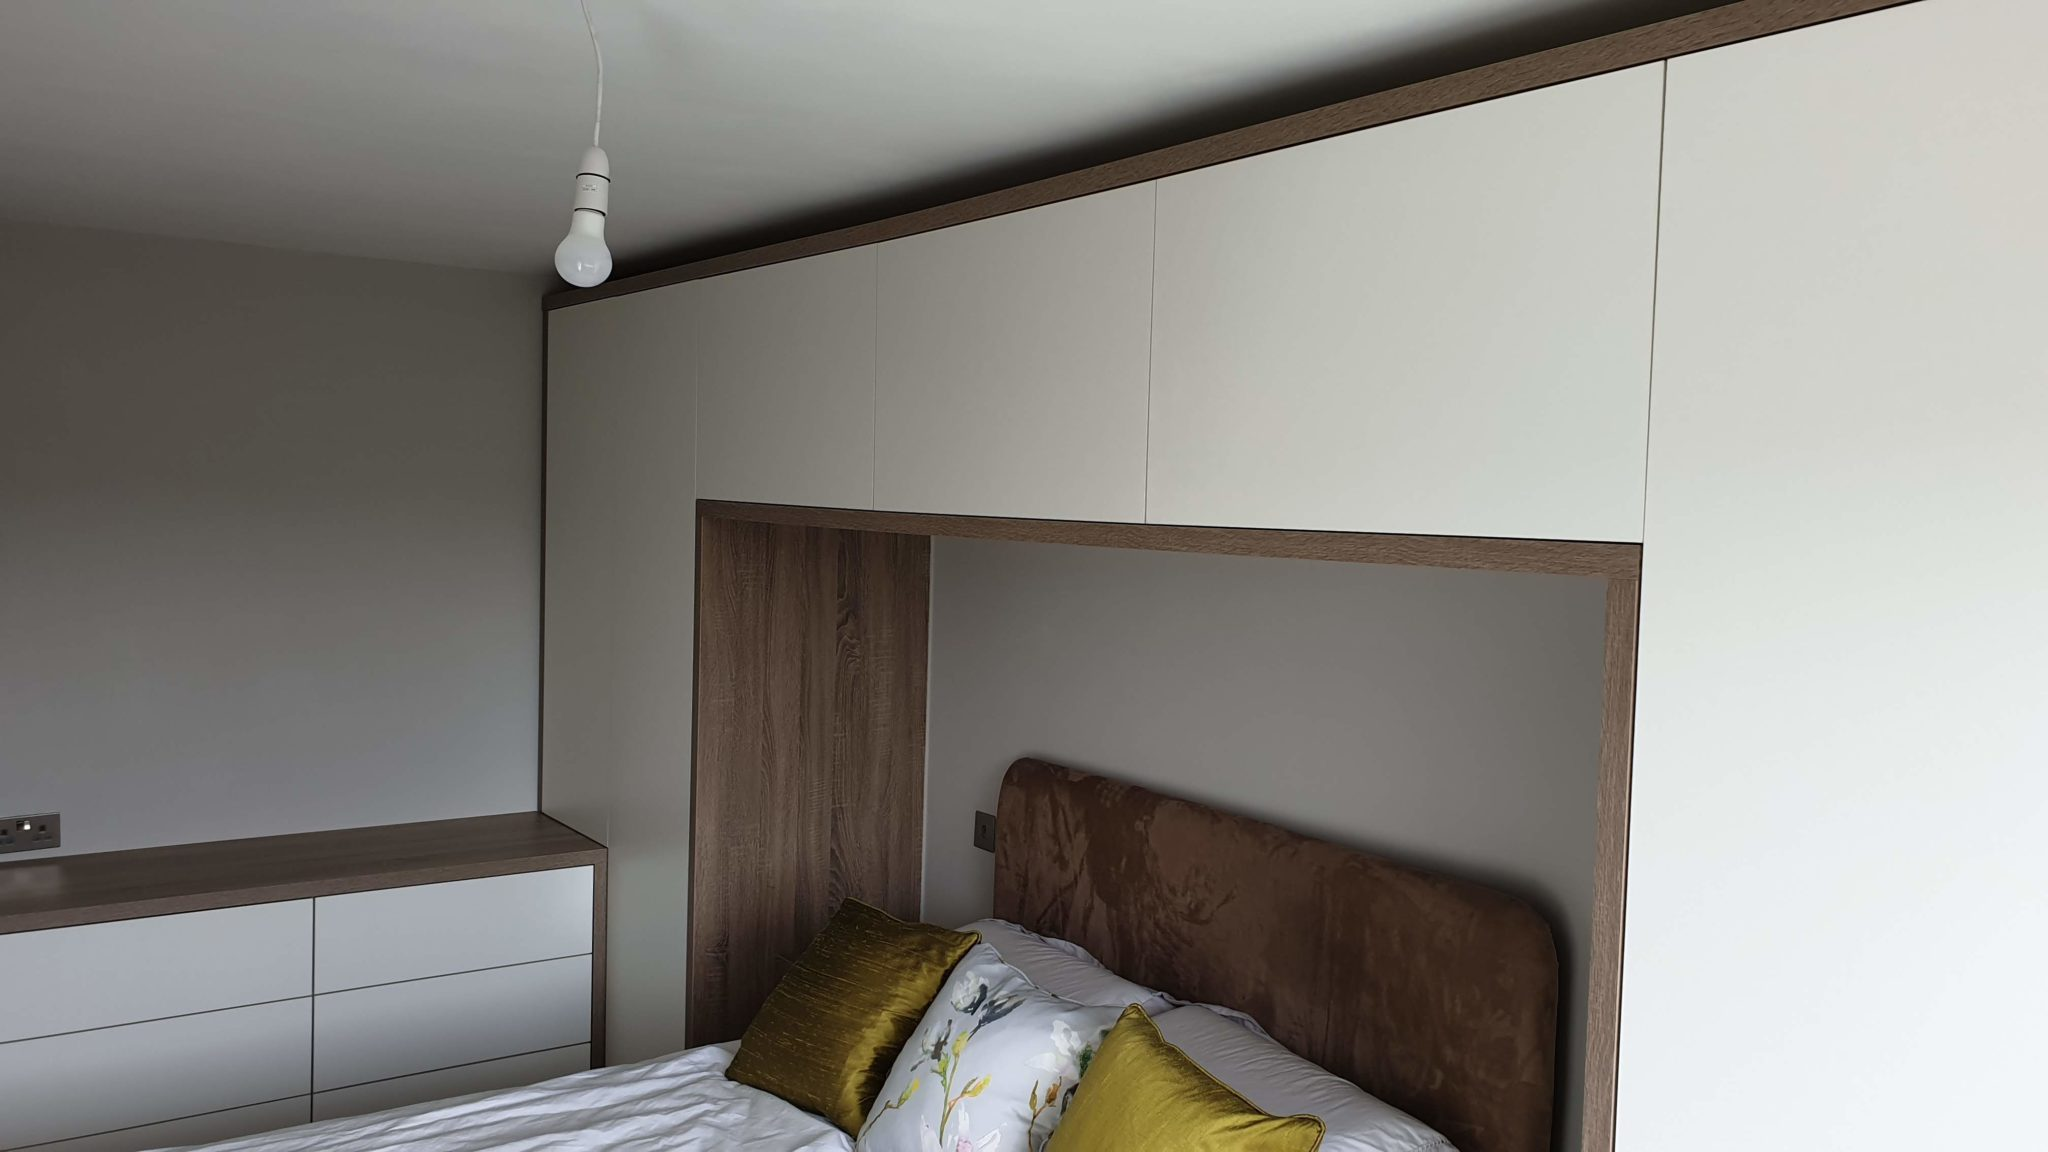 Scandinavian style white bespoke bedroom furniture made for our customer from South Yorkshire.